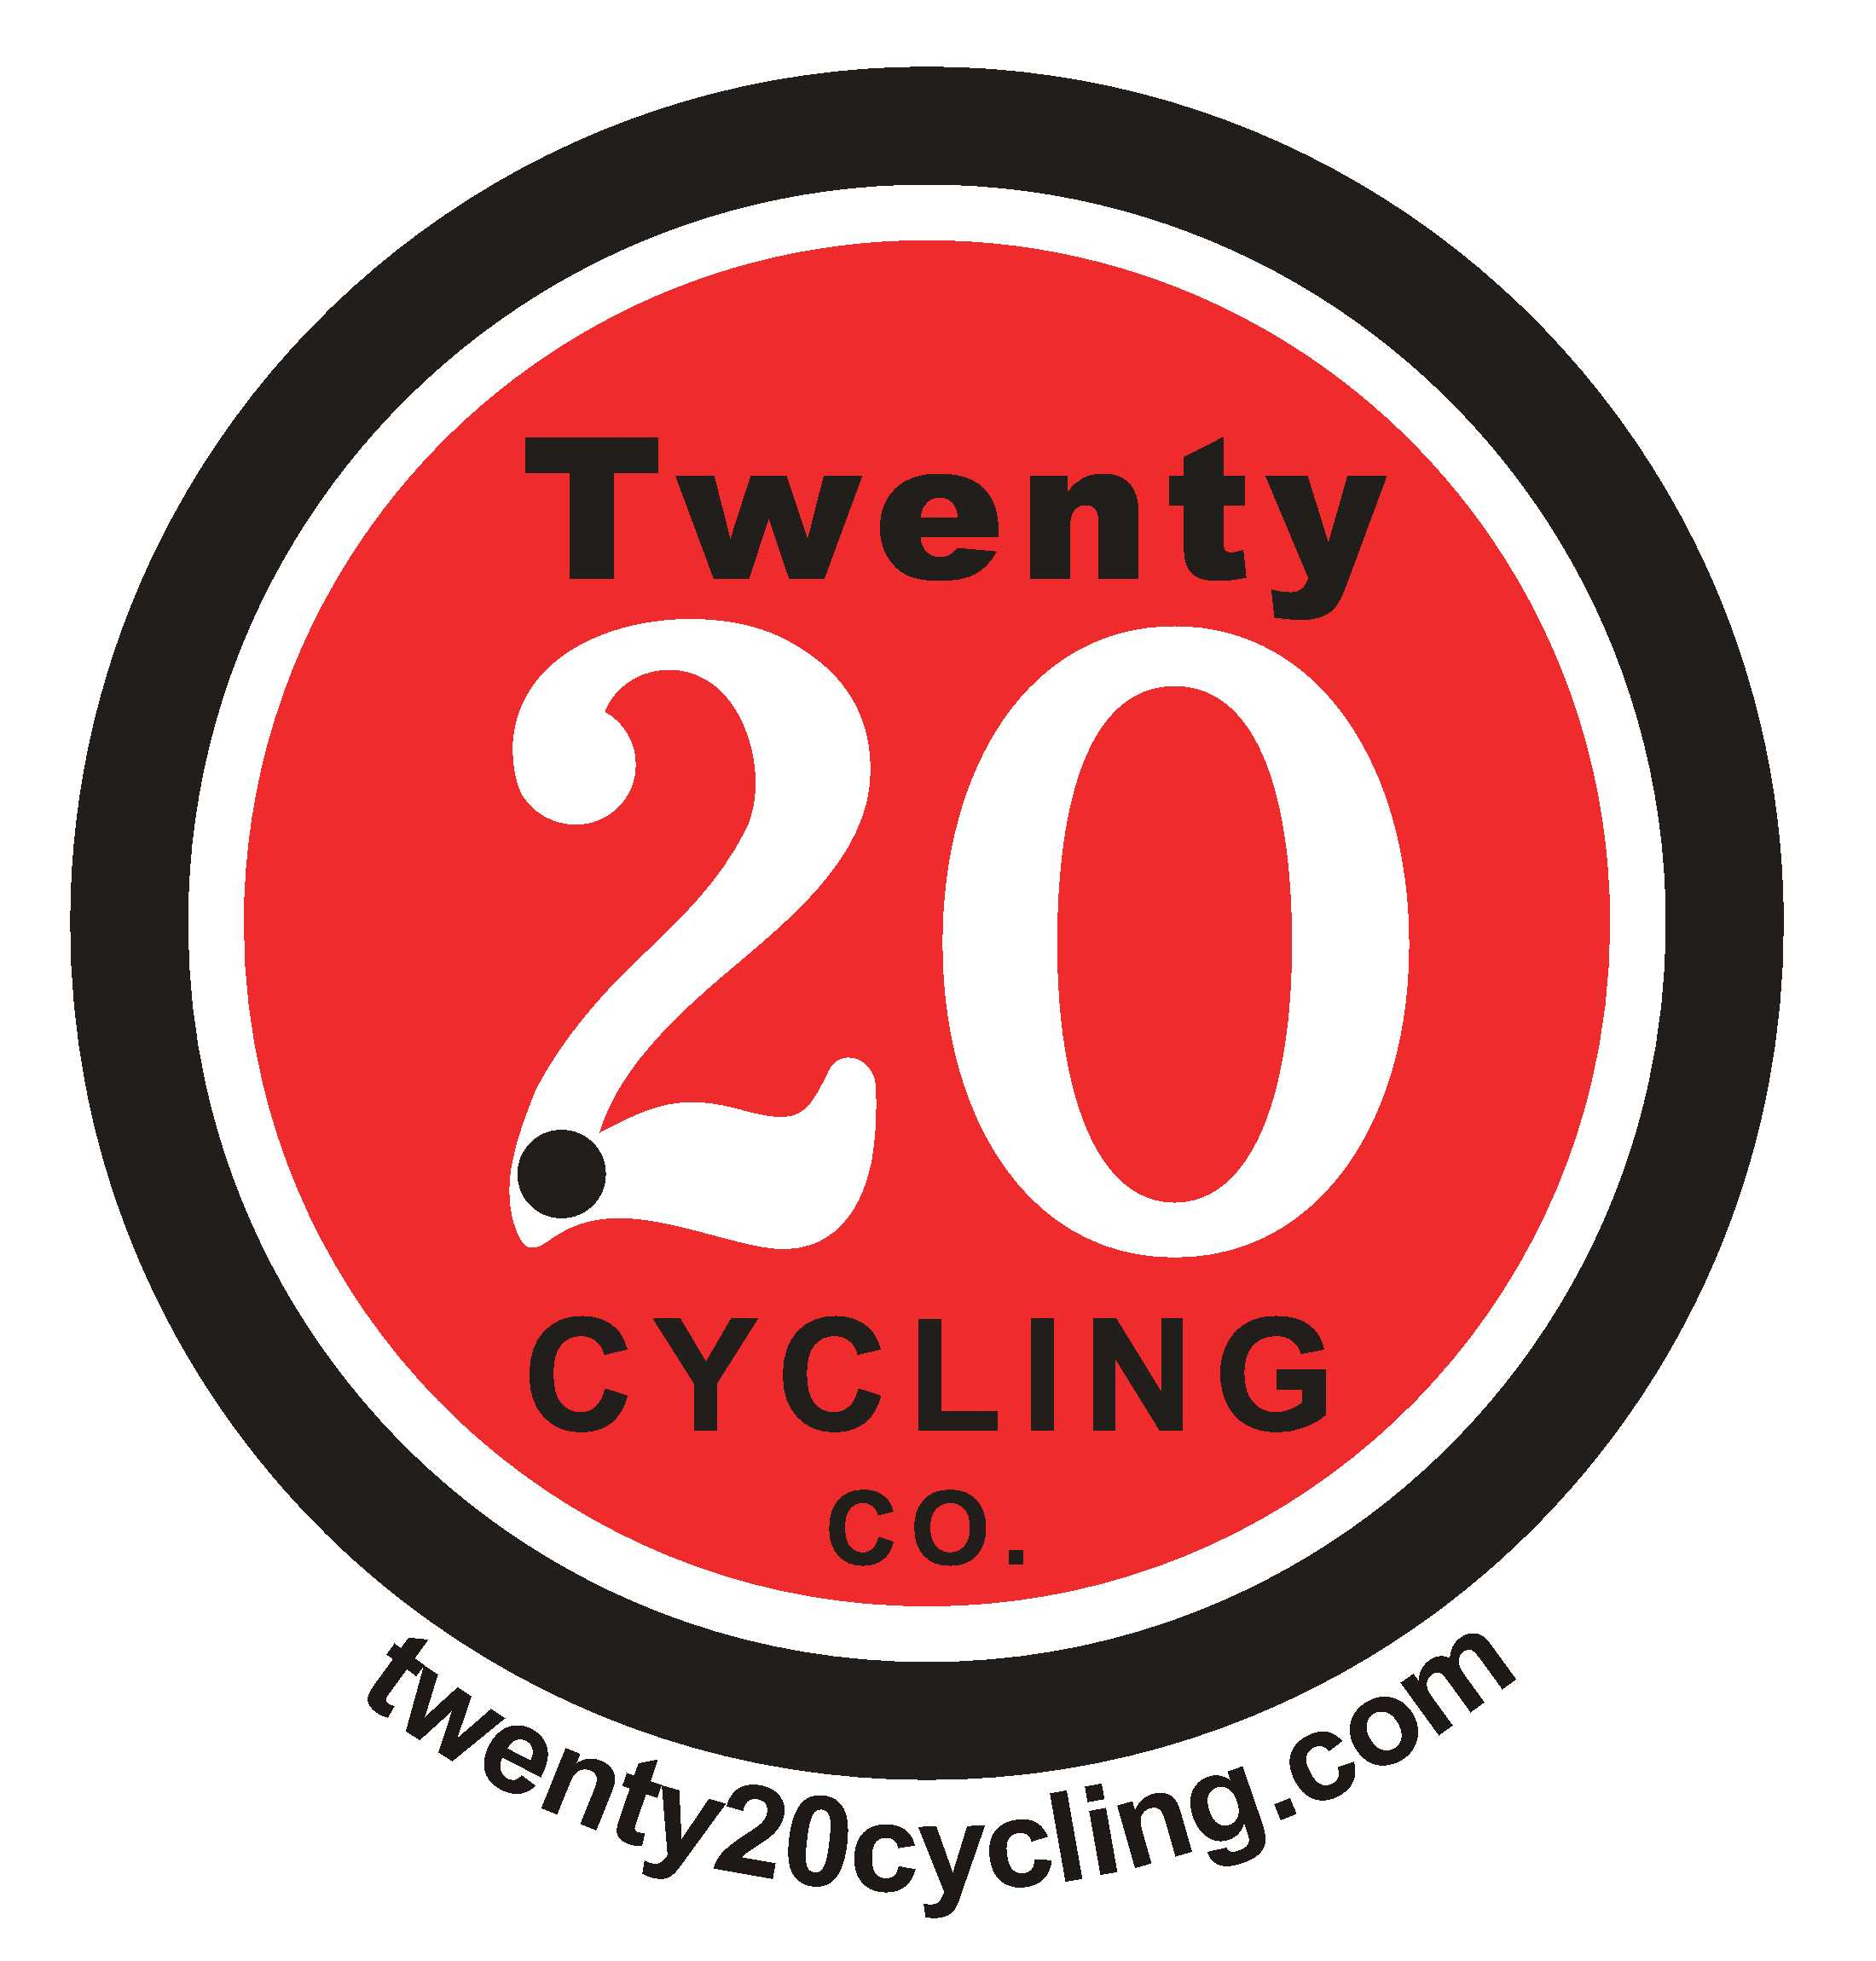 Twenty20 Cycling Co.